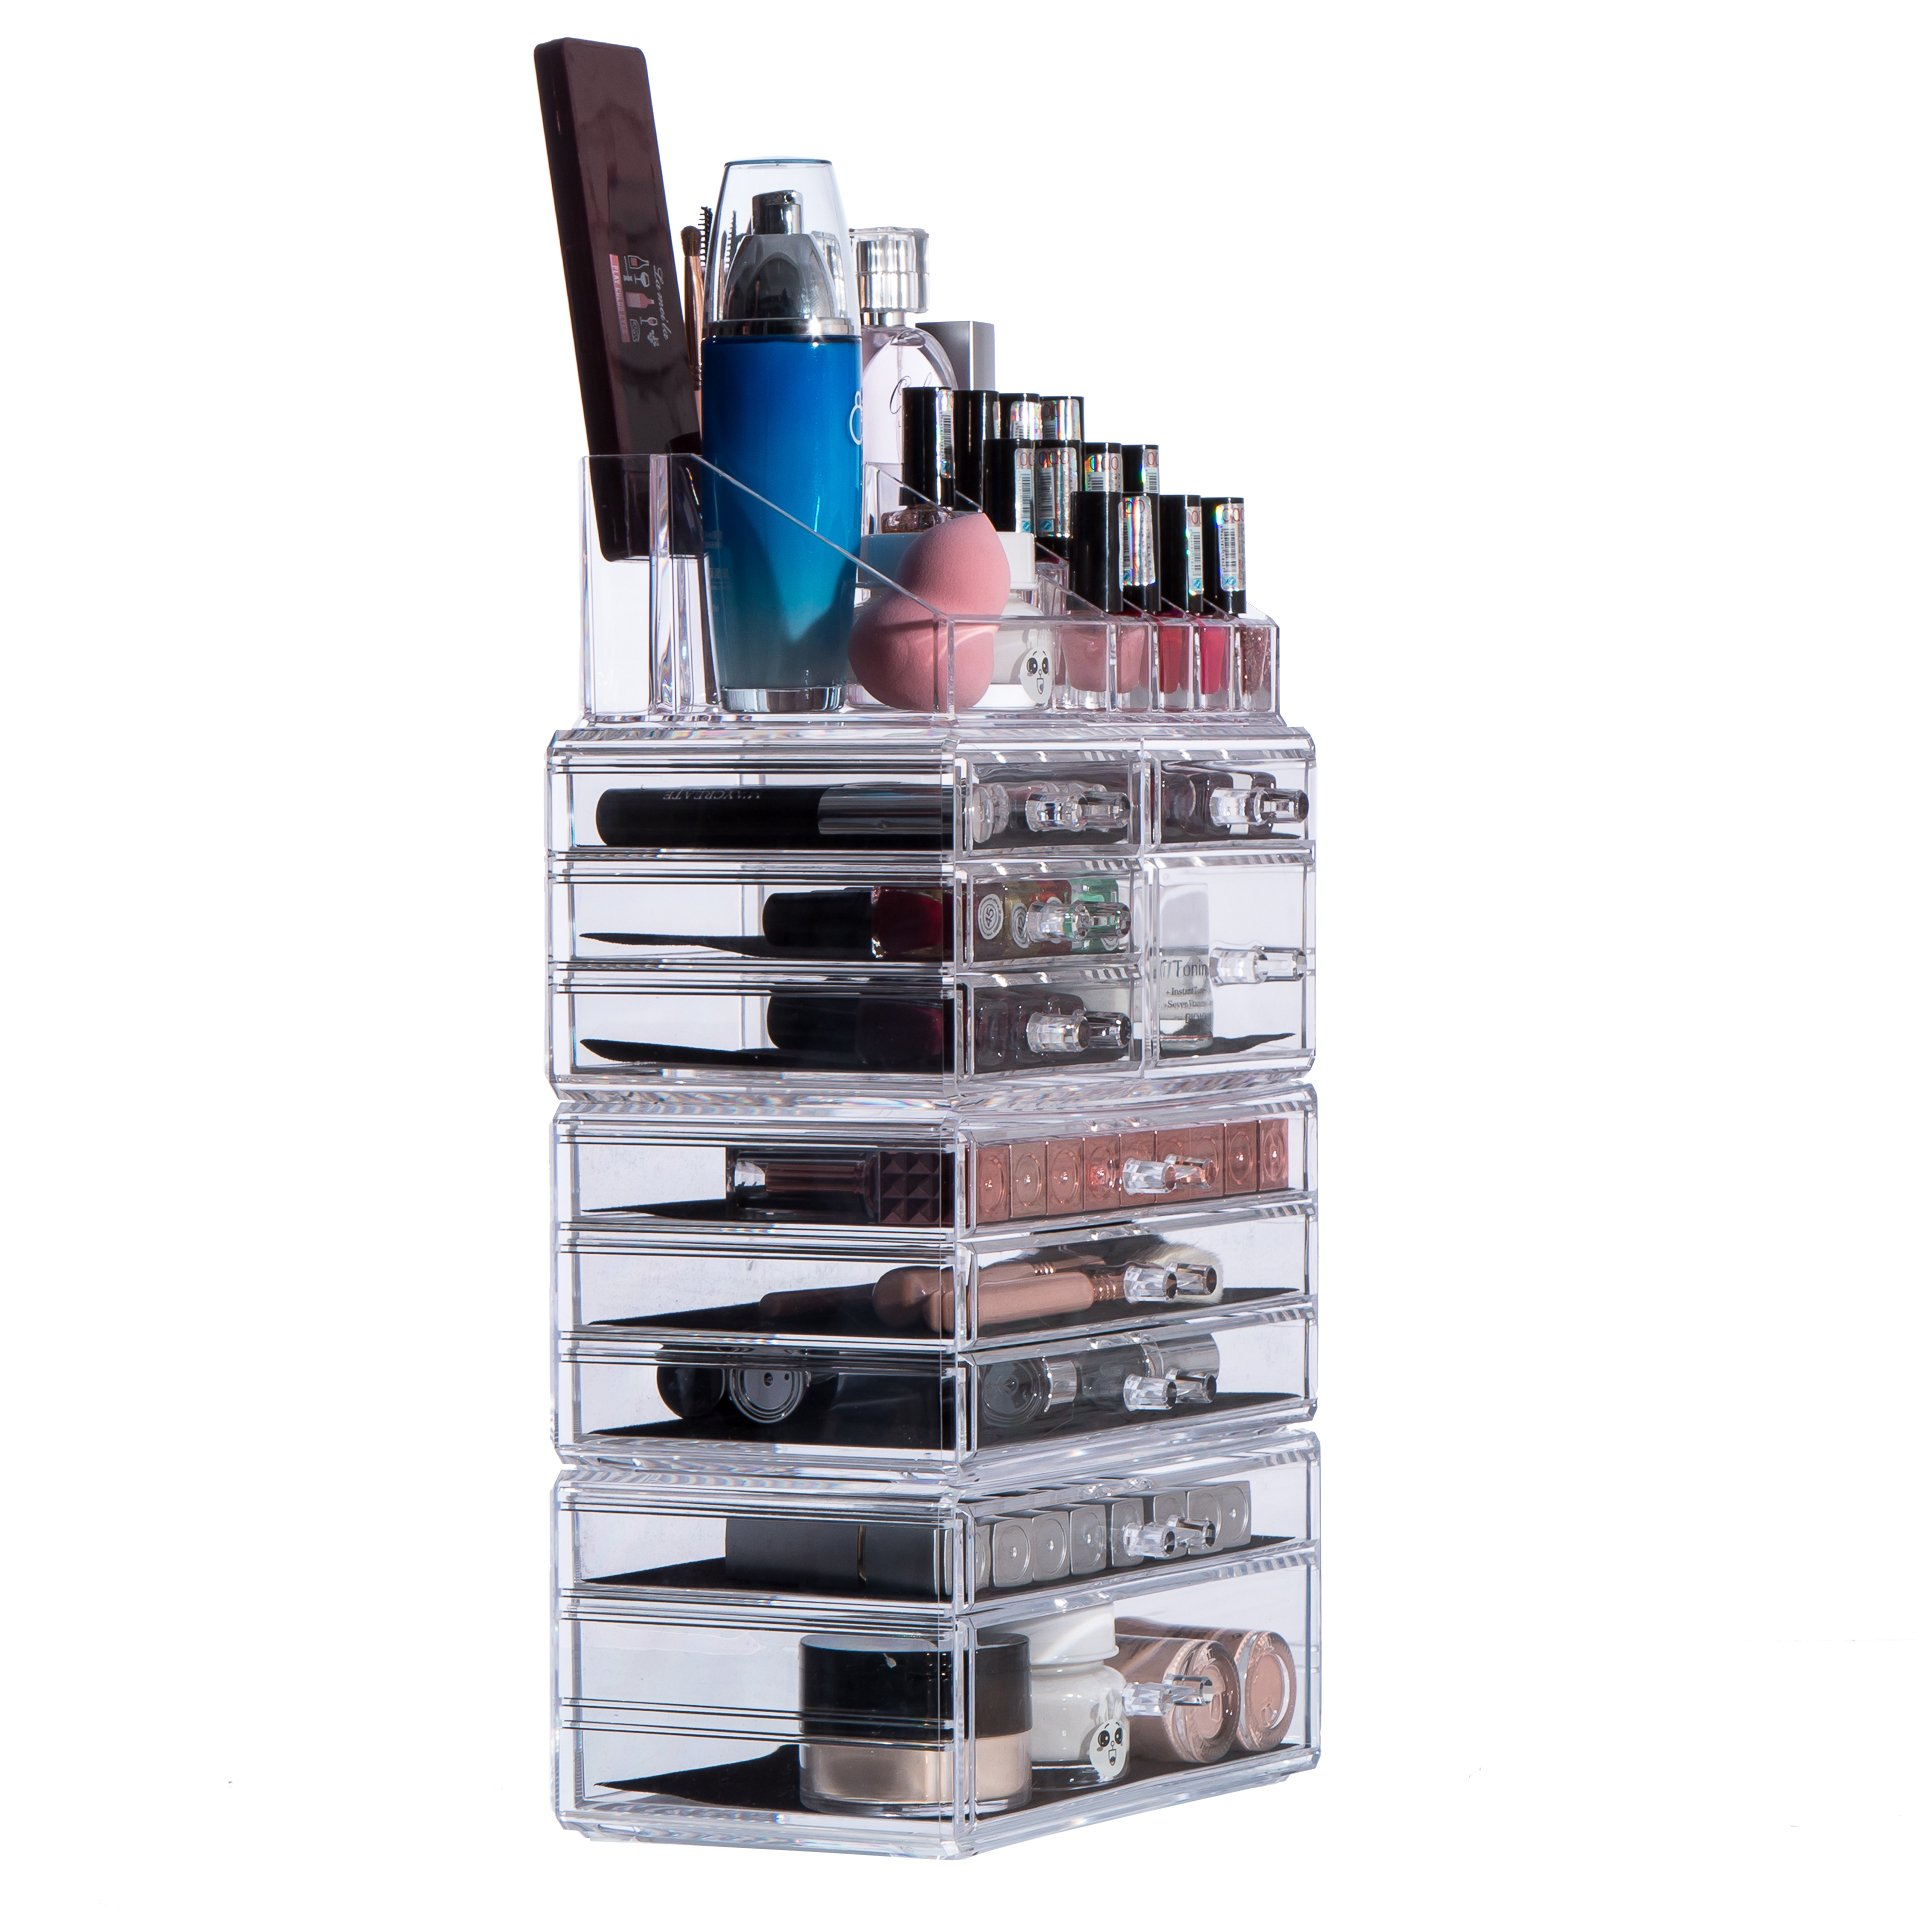 Cq acrylic Jewelry and Cosmetic Storage Drawers Display Makeup Organizer Boxes Case with 10 Drawers, 9.5'' x 5.4'' x 15.8'', 4 Piece